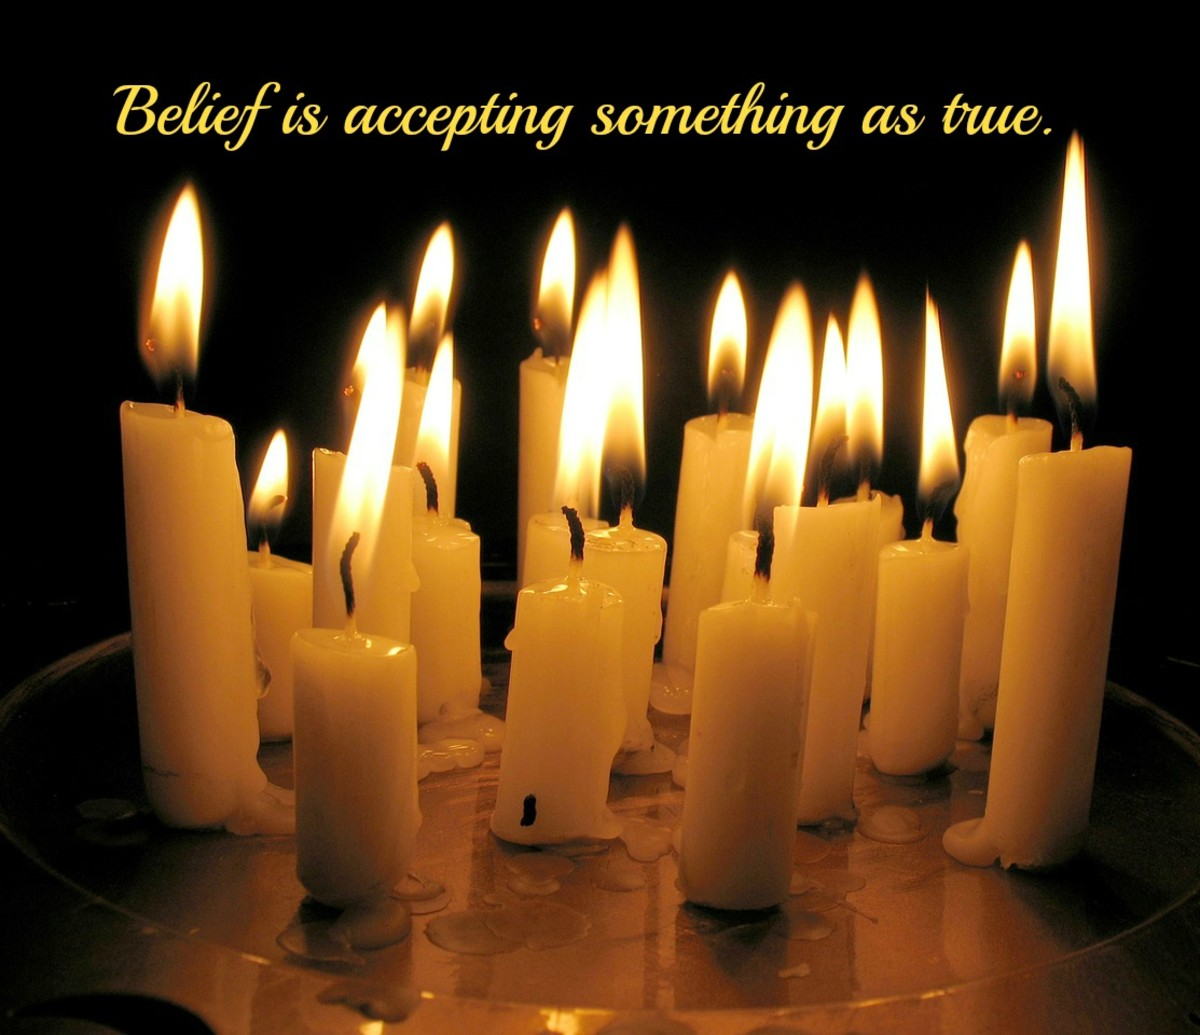 A belief is an acceptance that a statement is true or that something exists.